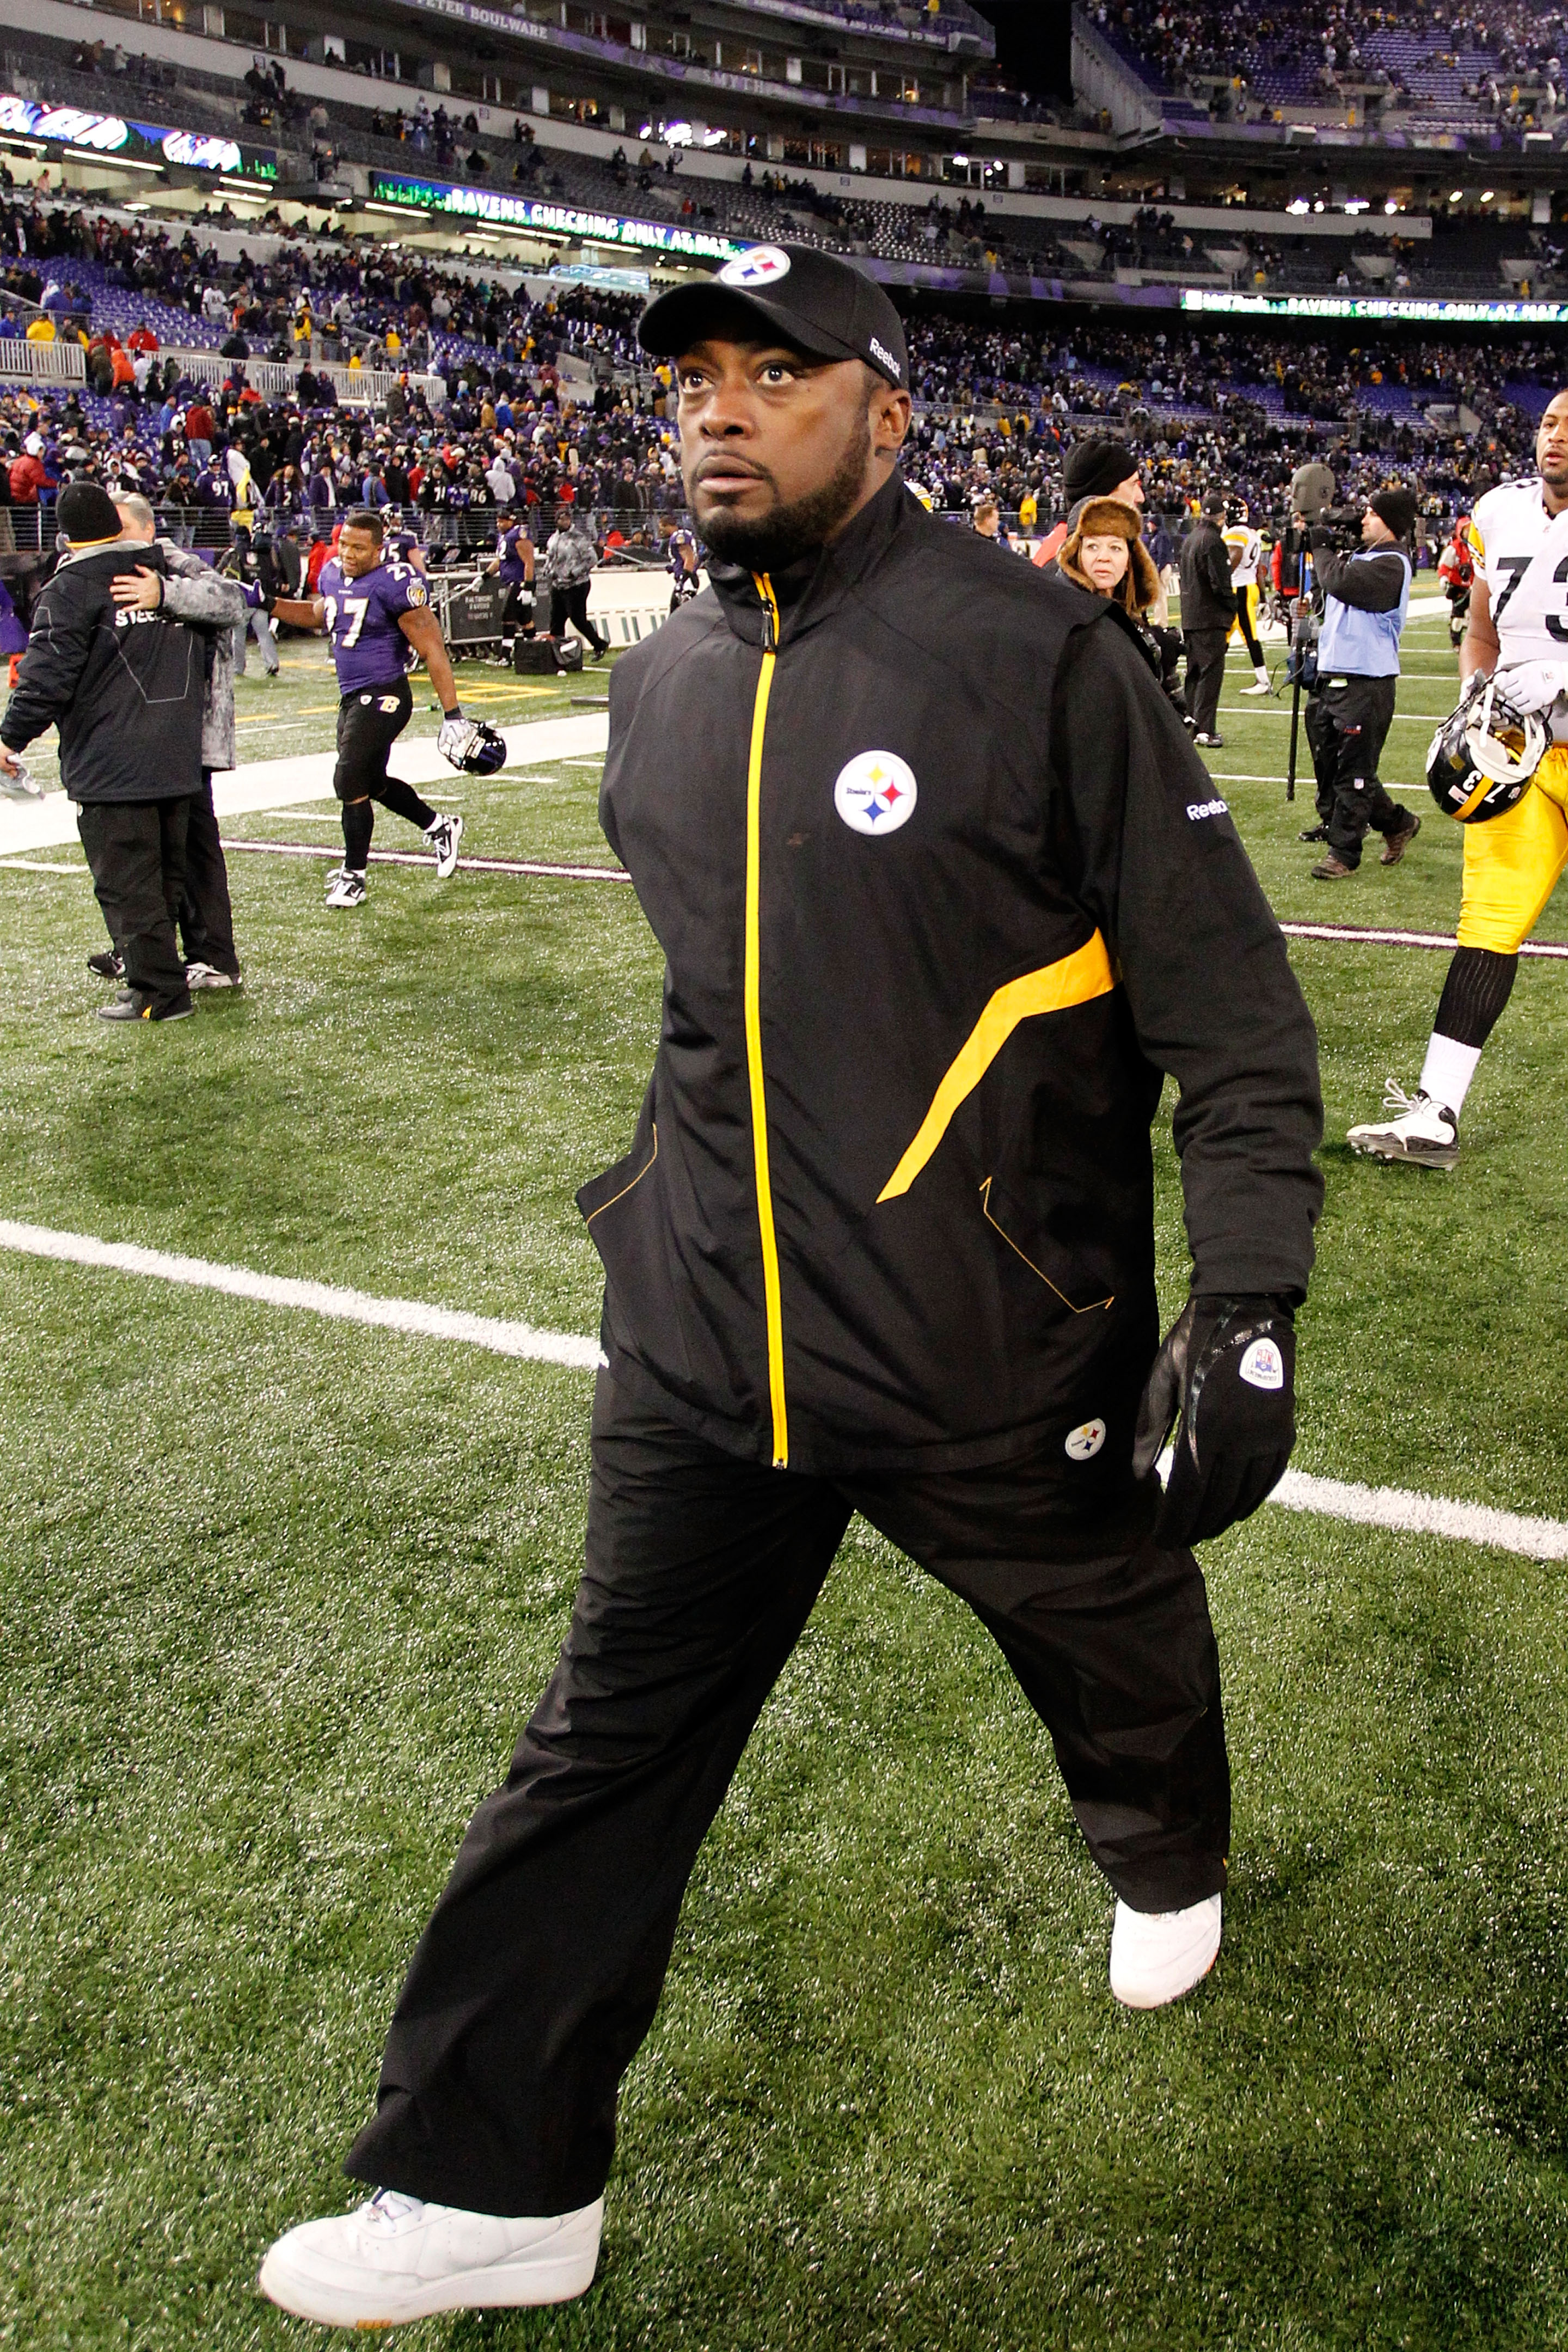 BALTIMORE, MD - DECEMBER 05:  Mike Tomlin head coach of the Pittsburgh Steelers walks off the field after defeating the Baltimore Ravens 13-10 at M&T Bank Stadium on December 5, 2010 in Baltimore, Maryland.  (Photo by Geoff Burke/Getty Images)